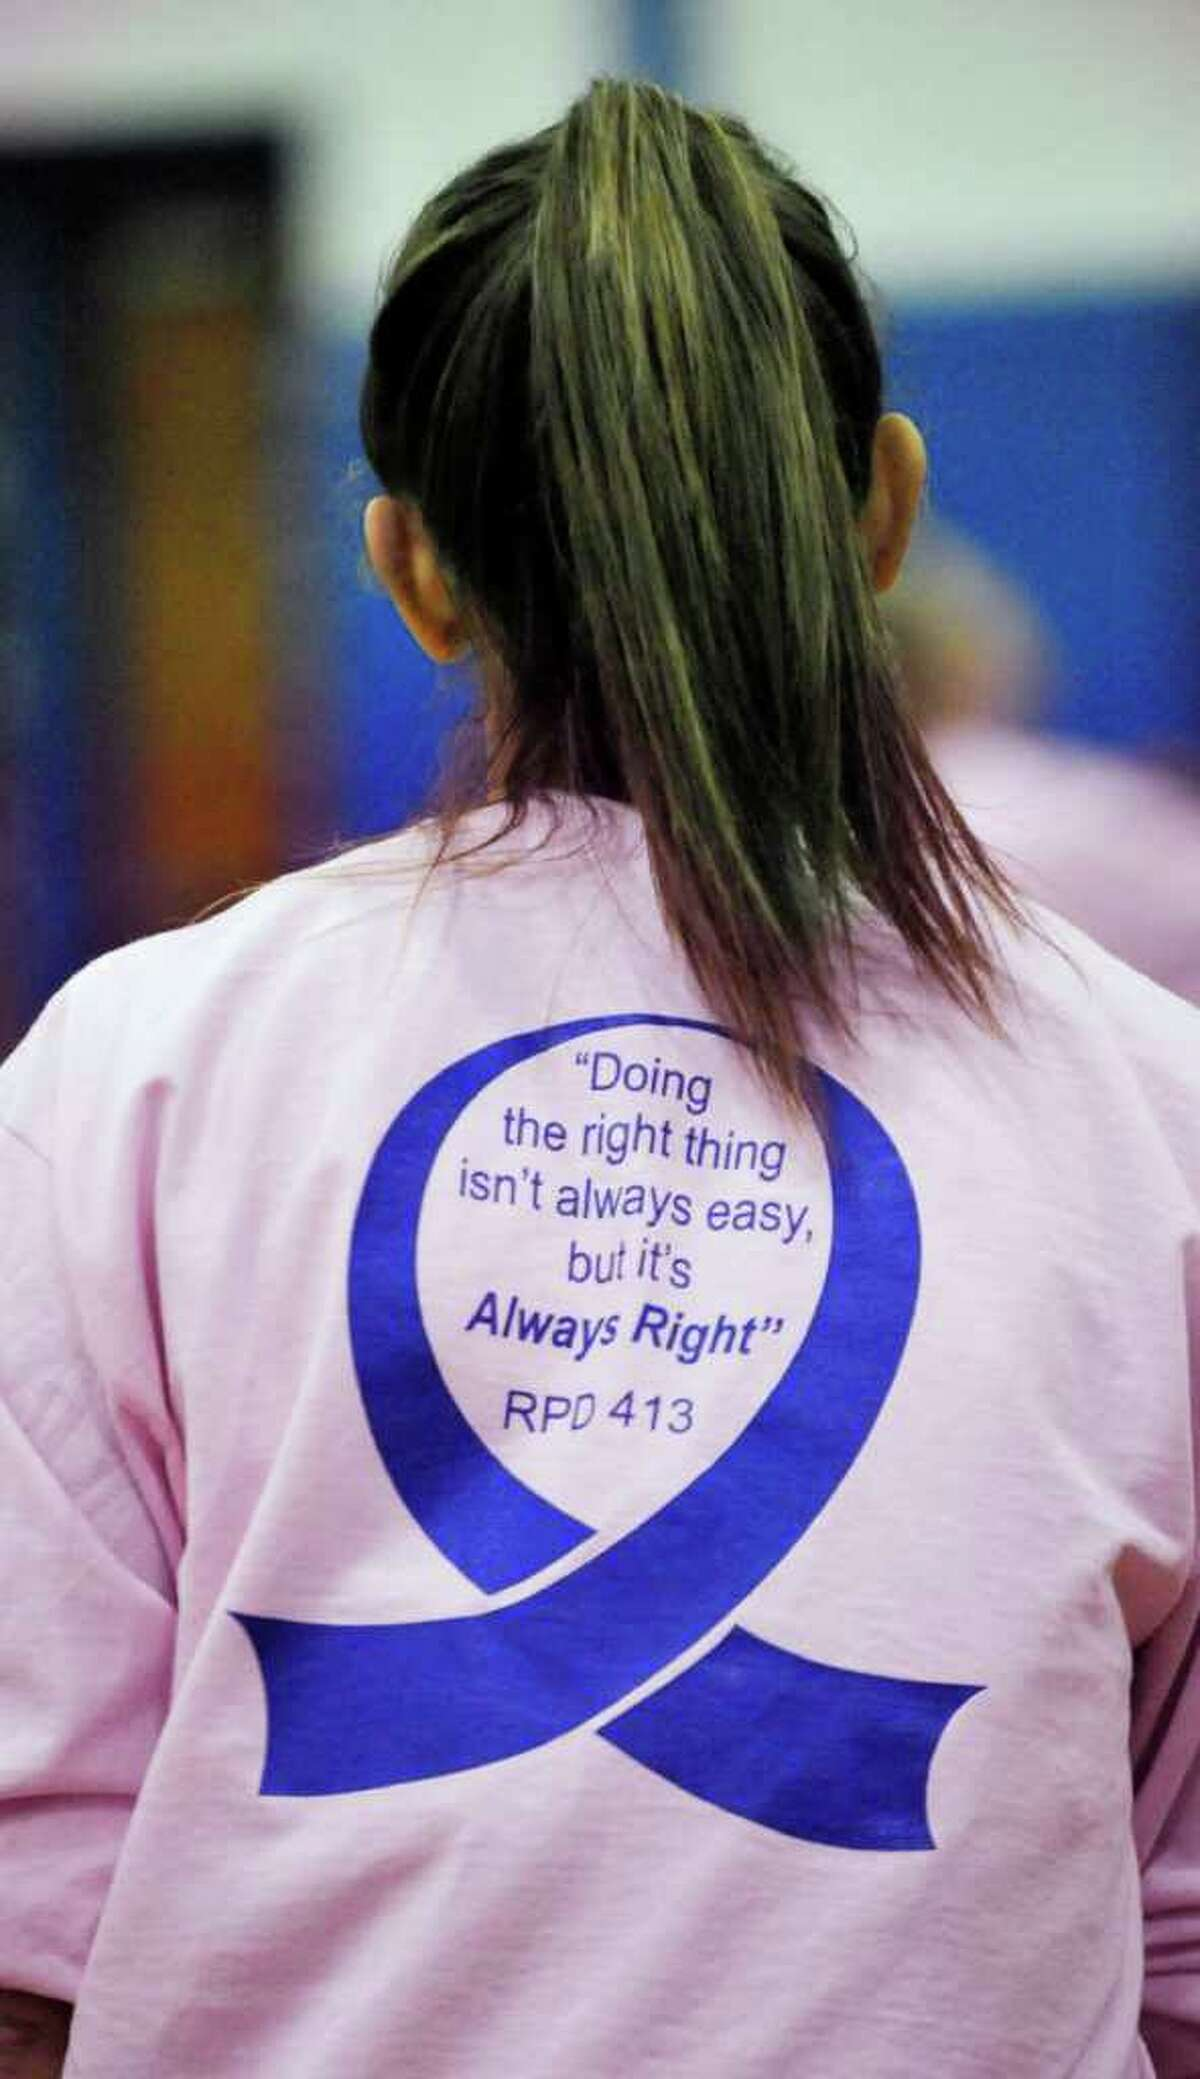 During warm-ups before their fourth annual Pink Game against Ridgefield, Danbury girls basketball players sported a memorial T-shirt with a quote from Danbury's former coach Bobby DiNardo at Danbury High School on Friday, Jan. 20, 2012. The Pink Game is played to create awareness for cancer and to remember former coach and Danbury Police Officer Bobby DiNardo who died from cancer.